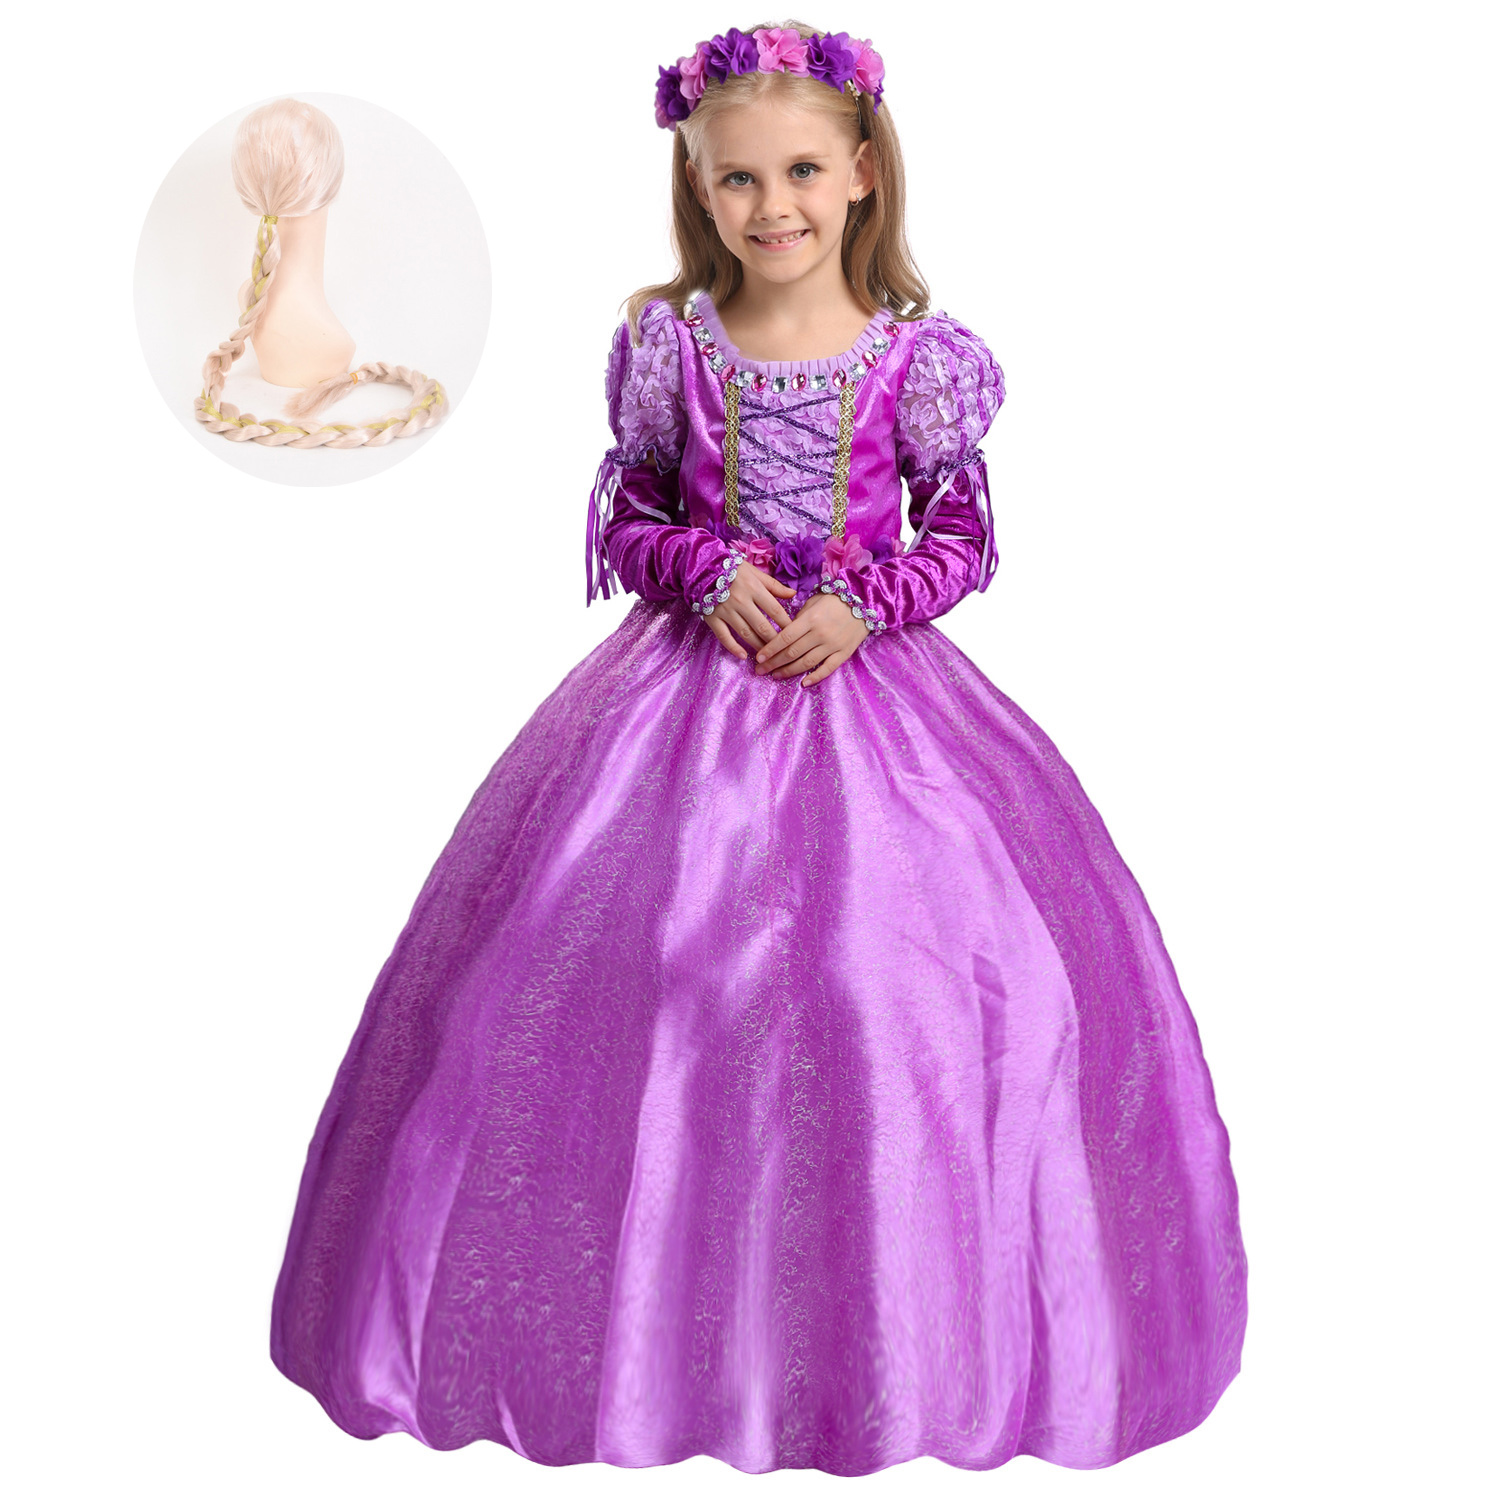 Fashion Fancy Purple Princess Party Dress Cosplay Halloween Girls Rapunzel Dress and Wig Up Costume Gown with Gloves girls dresses trolls poppy cosplay costume dress for girl poppy dress streetwear halloween clothes kids fancy dresses trolls wig